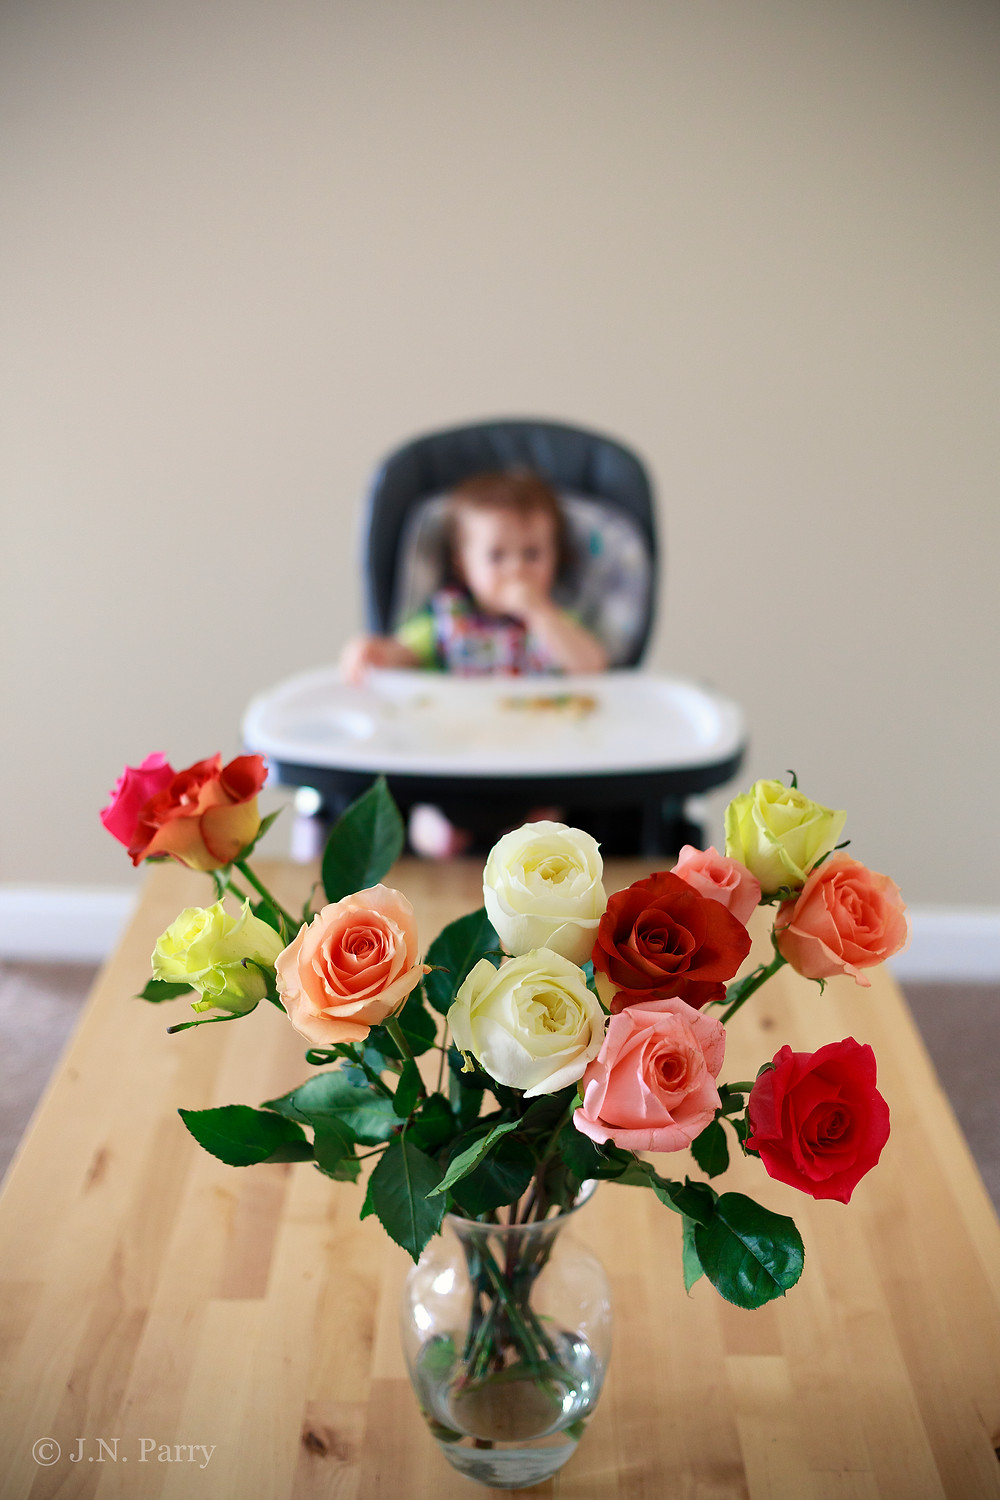 Roses & baby